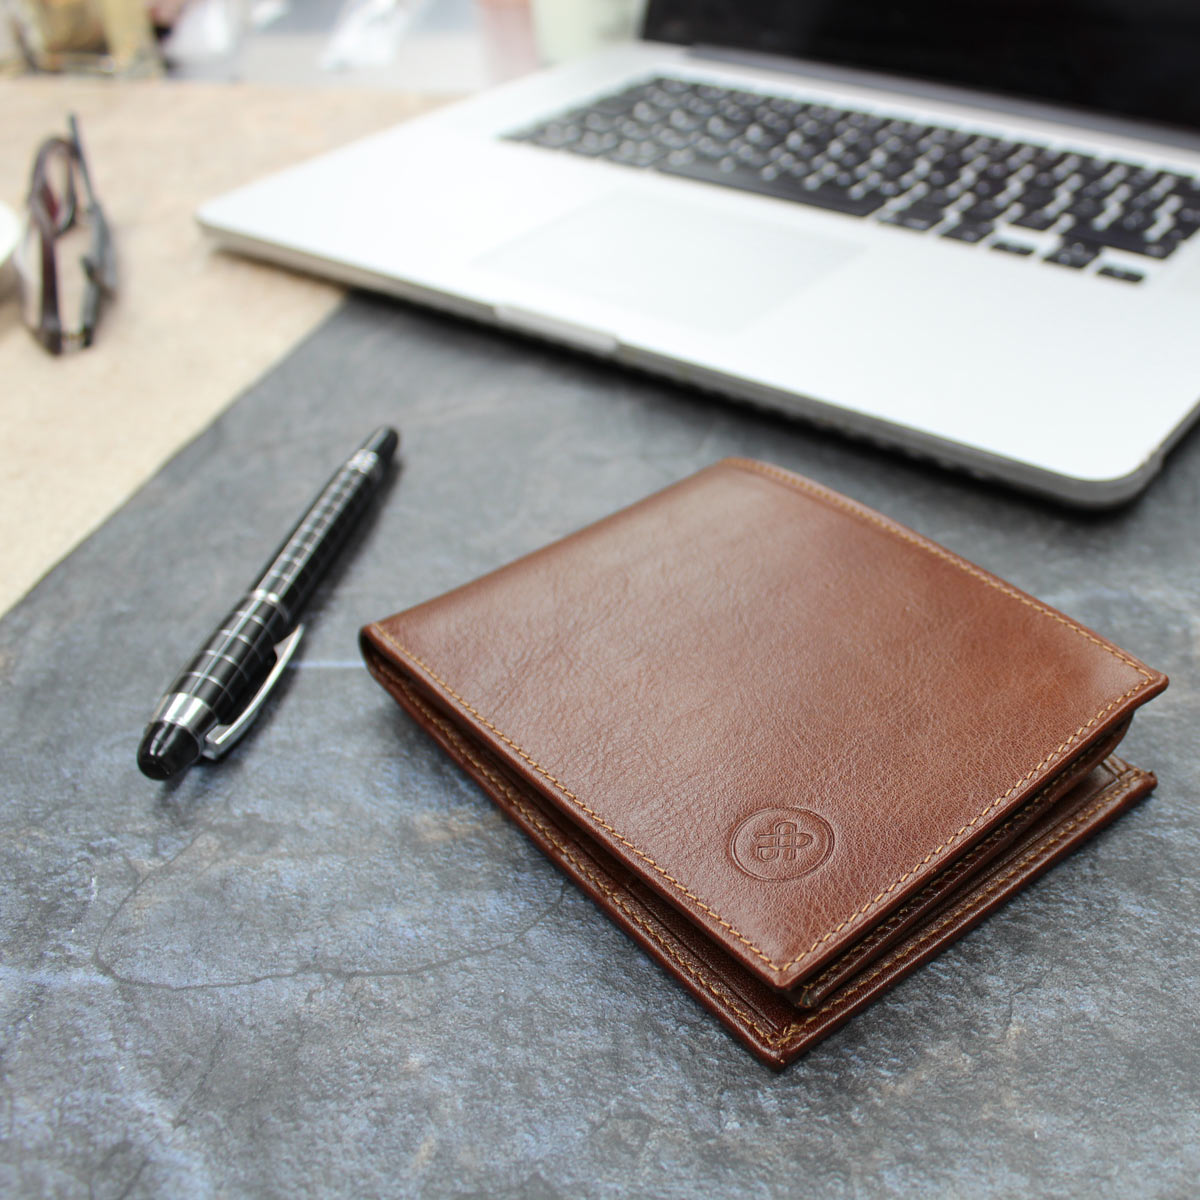 Image 8 of the 'Gallucio' Chestnut Veg-Tanned Leather Tri Fold Credit Card Wallet